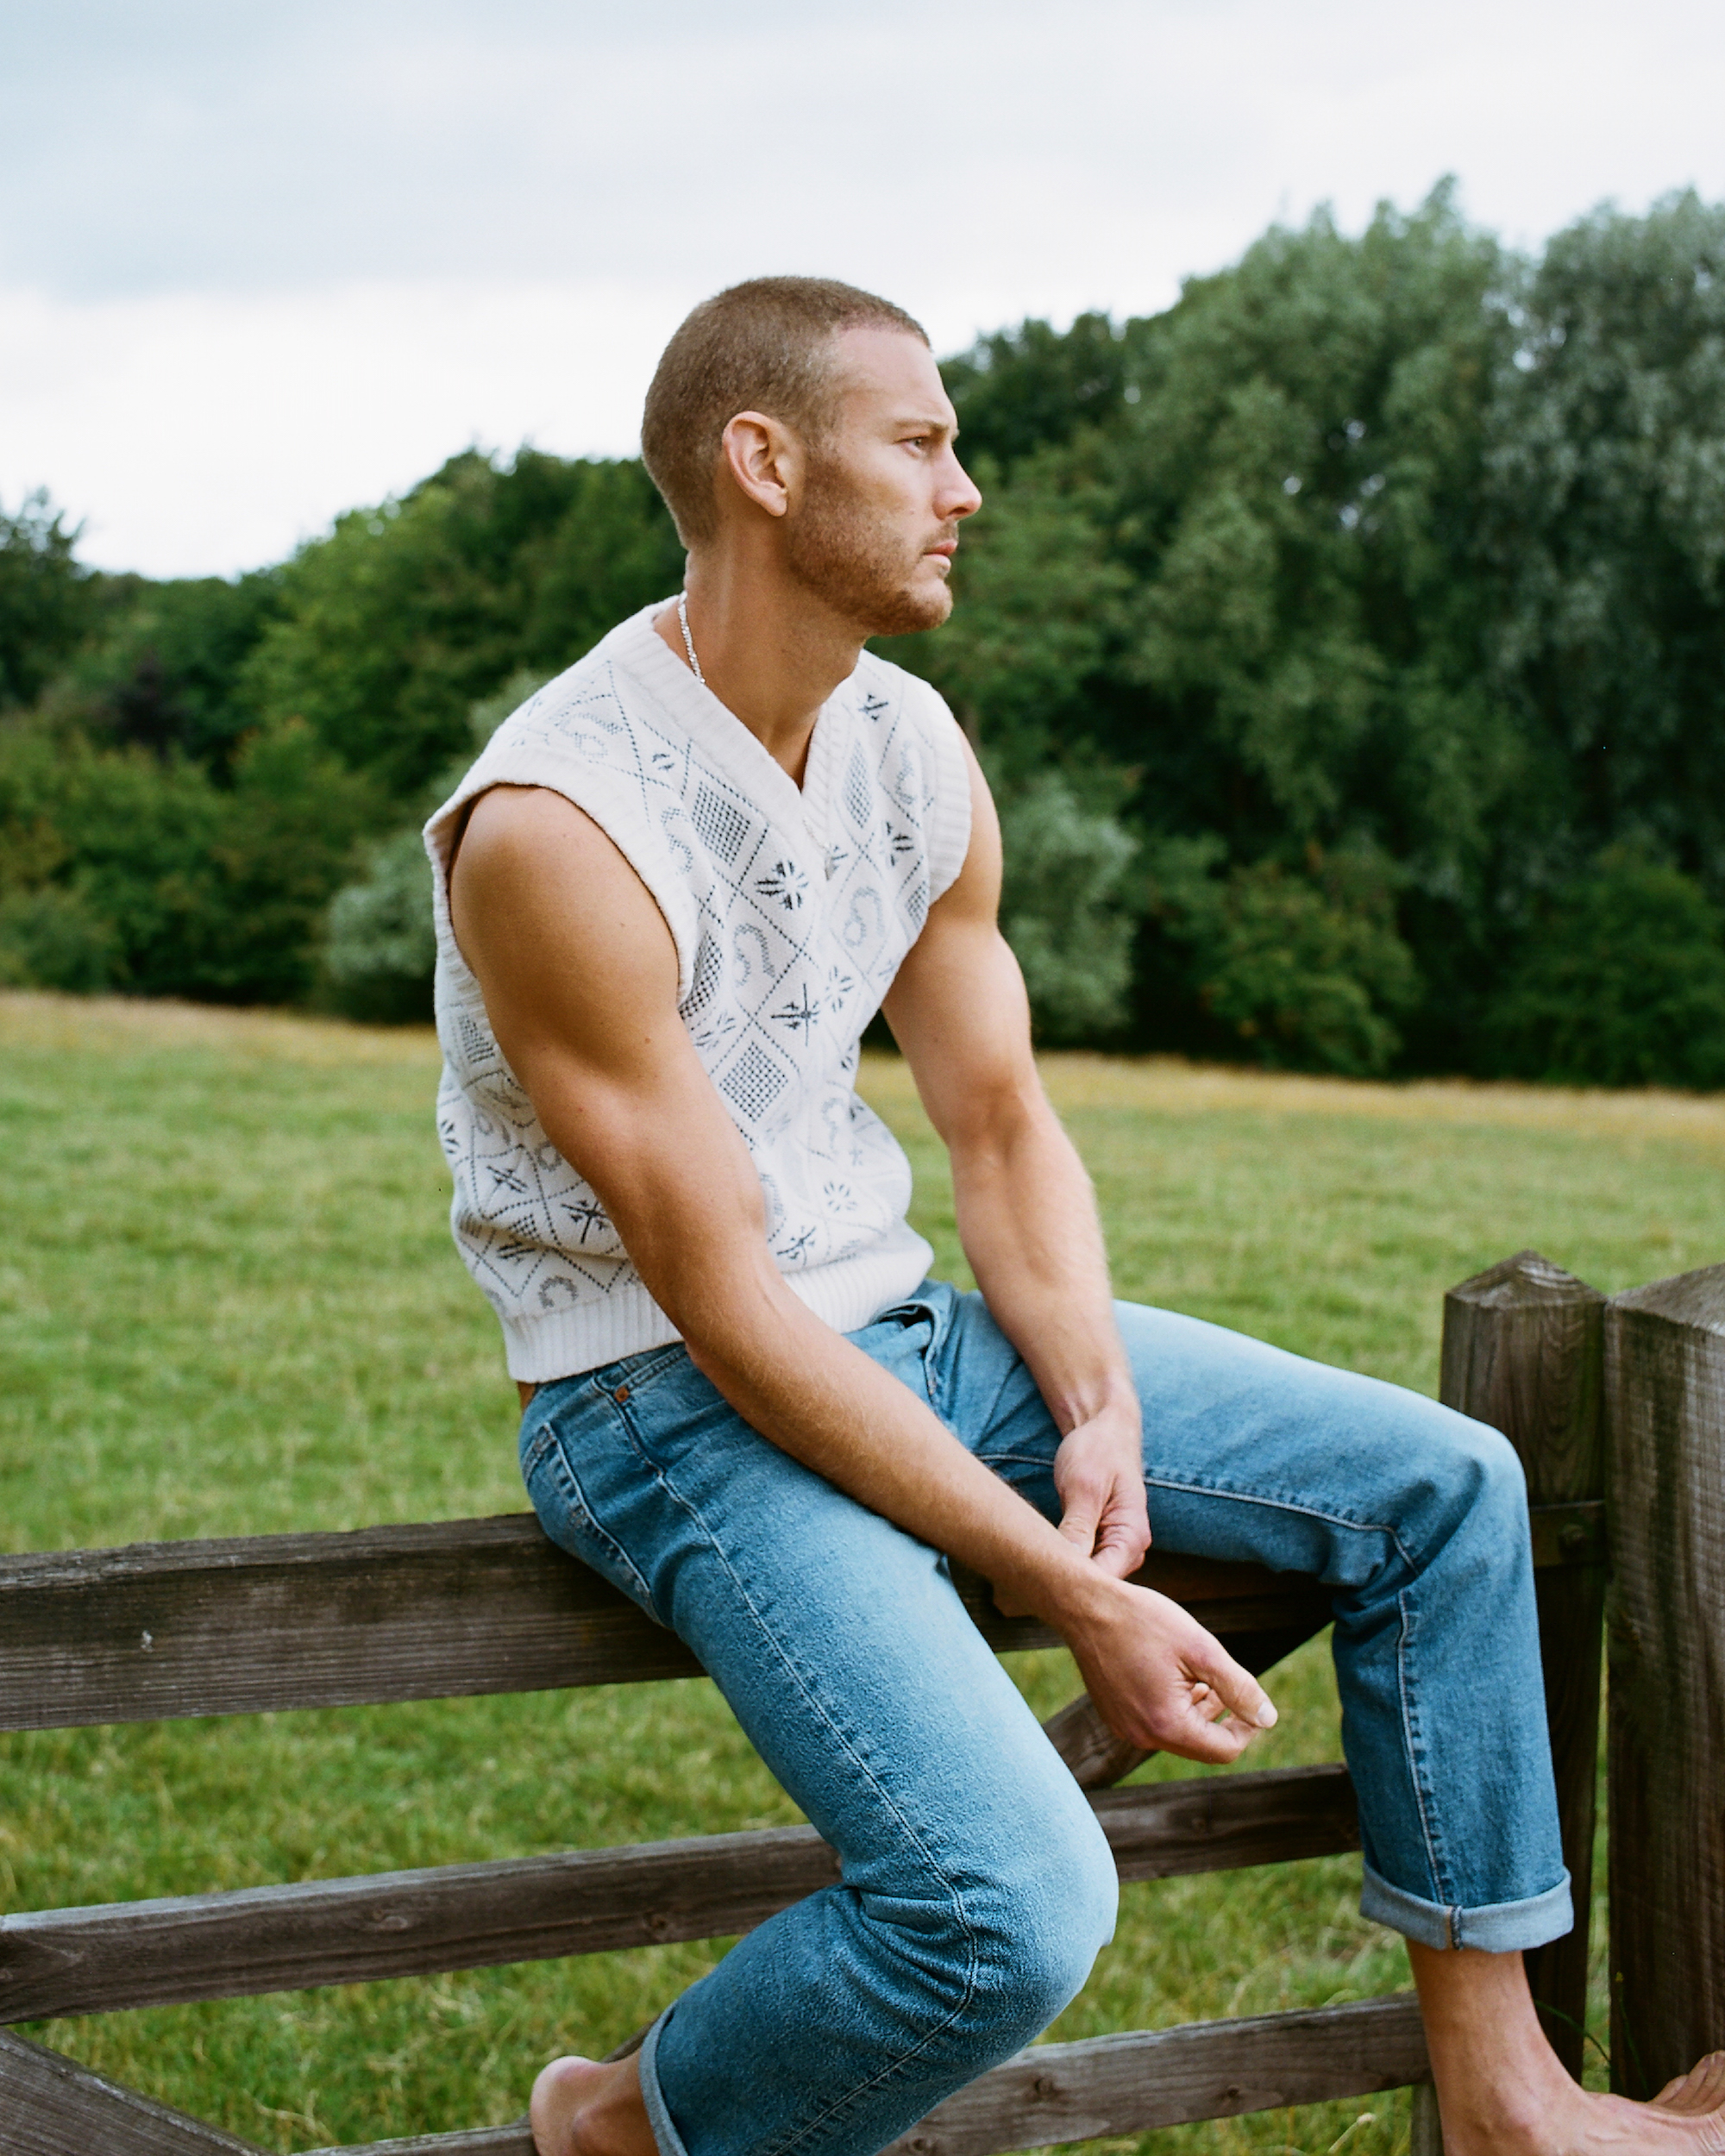 Tom Hopper for Man About Town vest